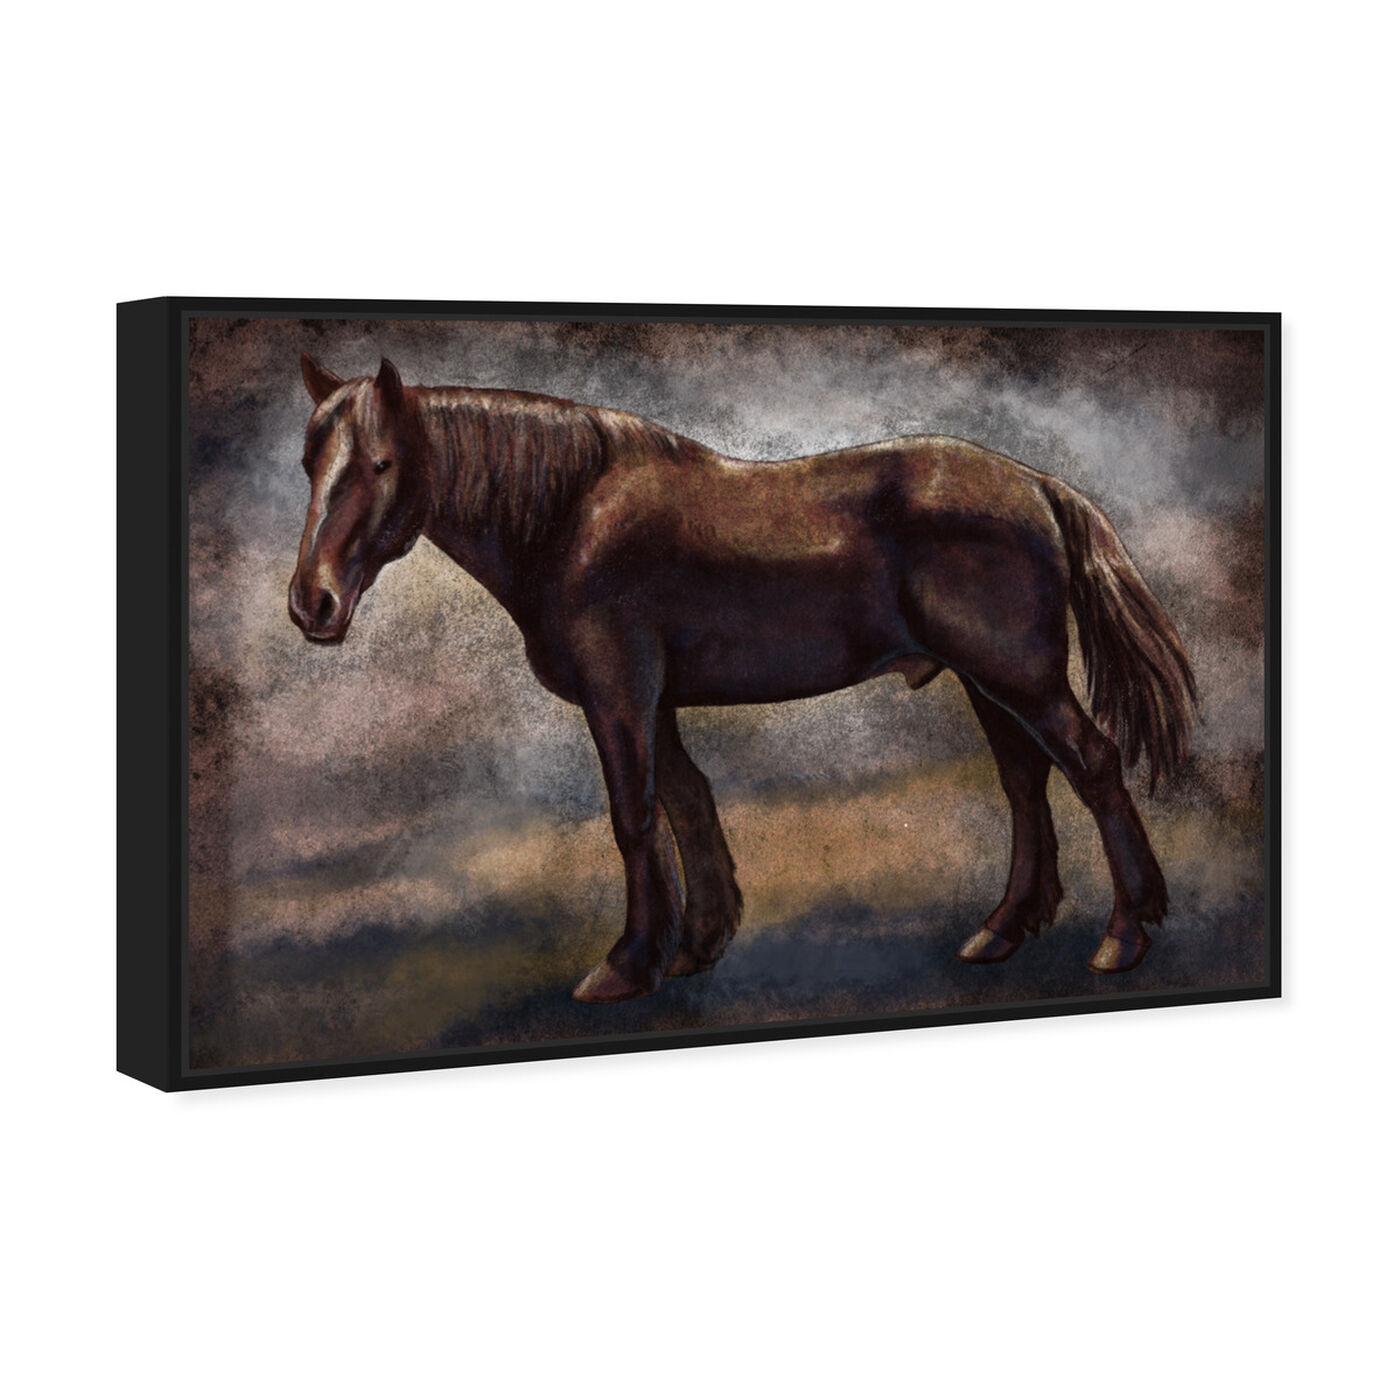 Angled view of Brown Horse featuring animals and farm animals art.